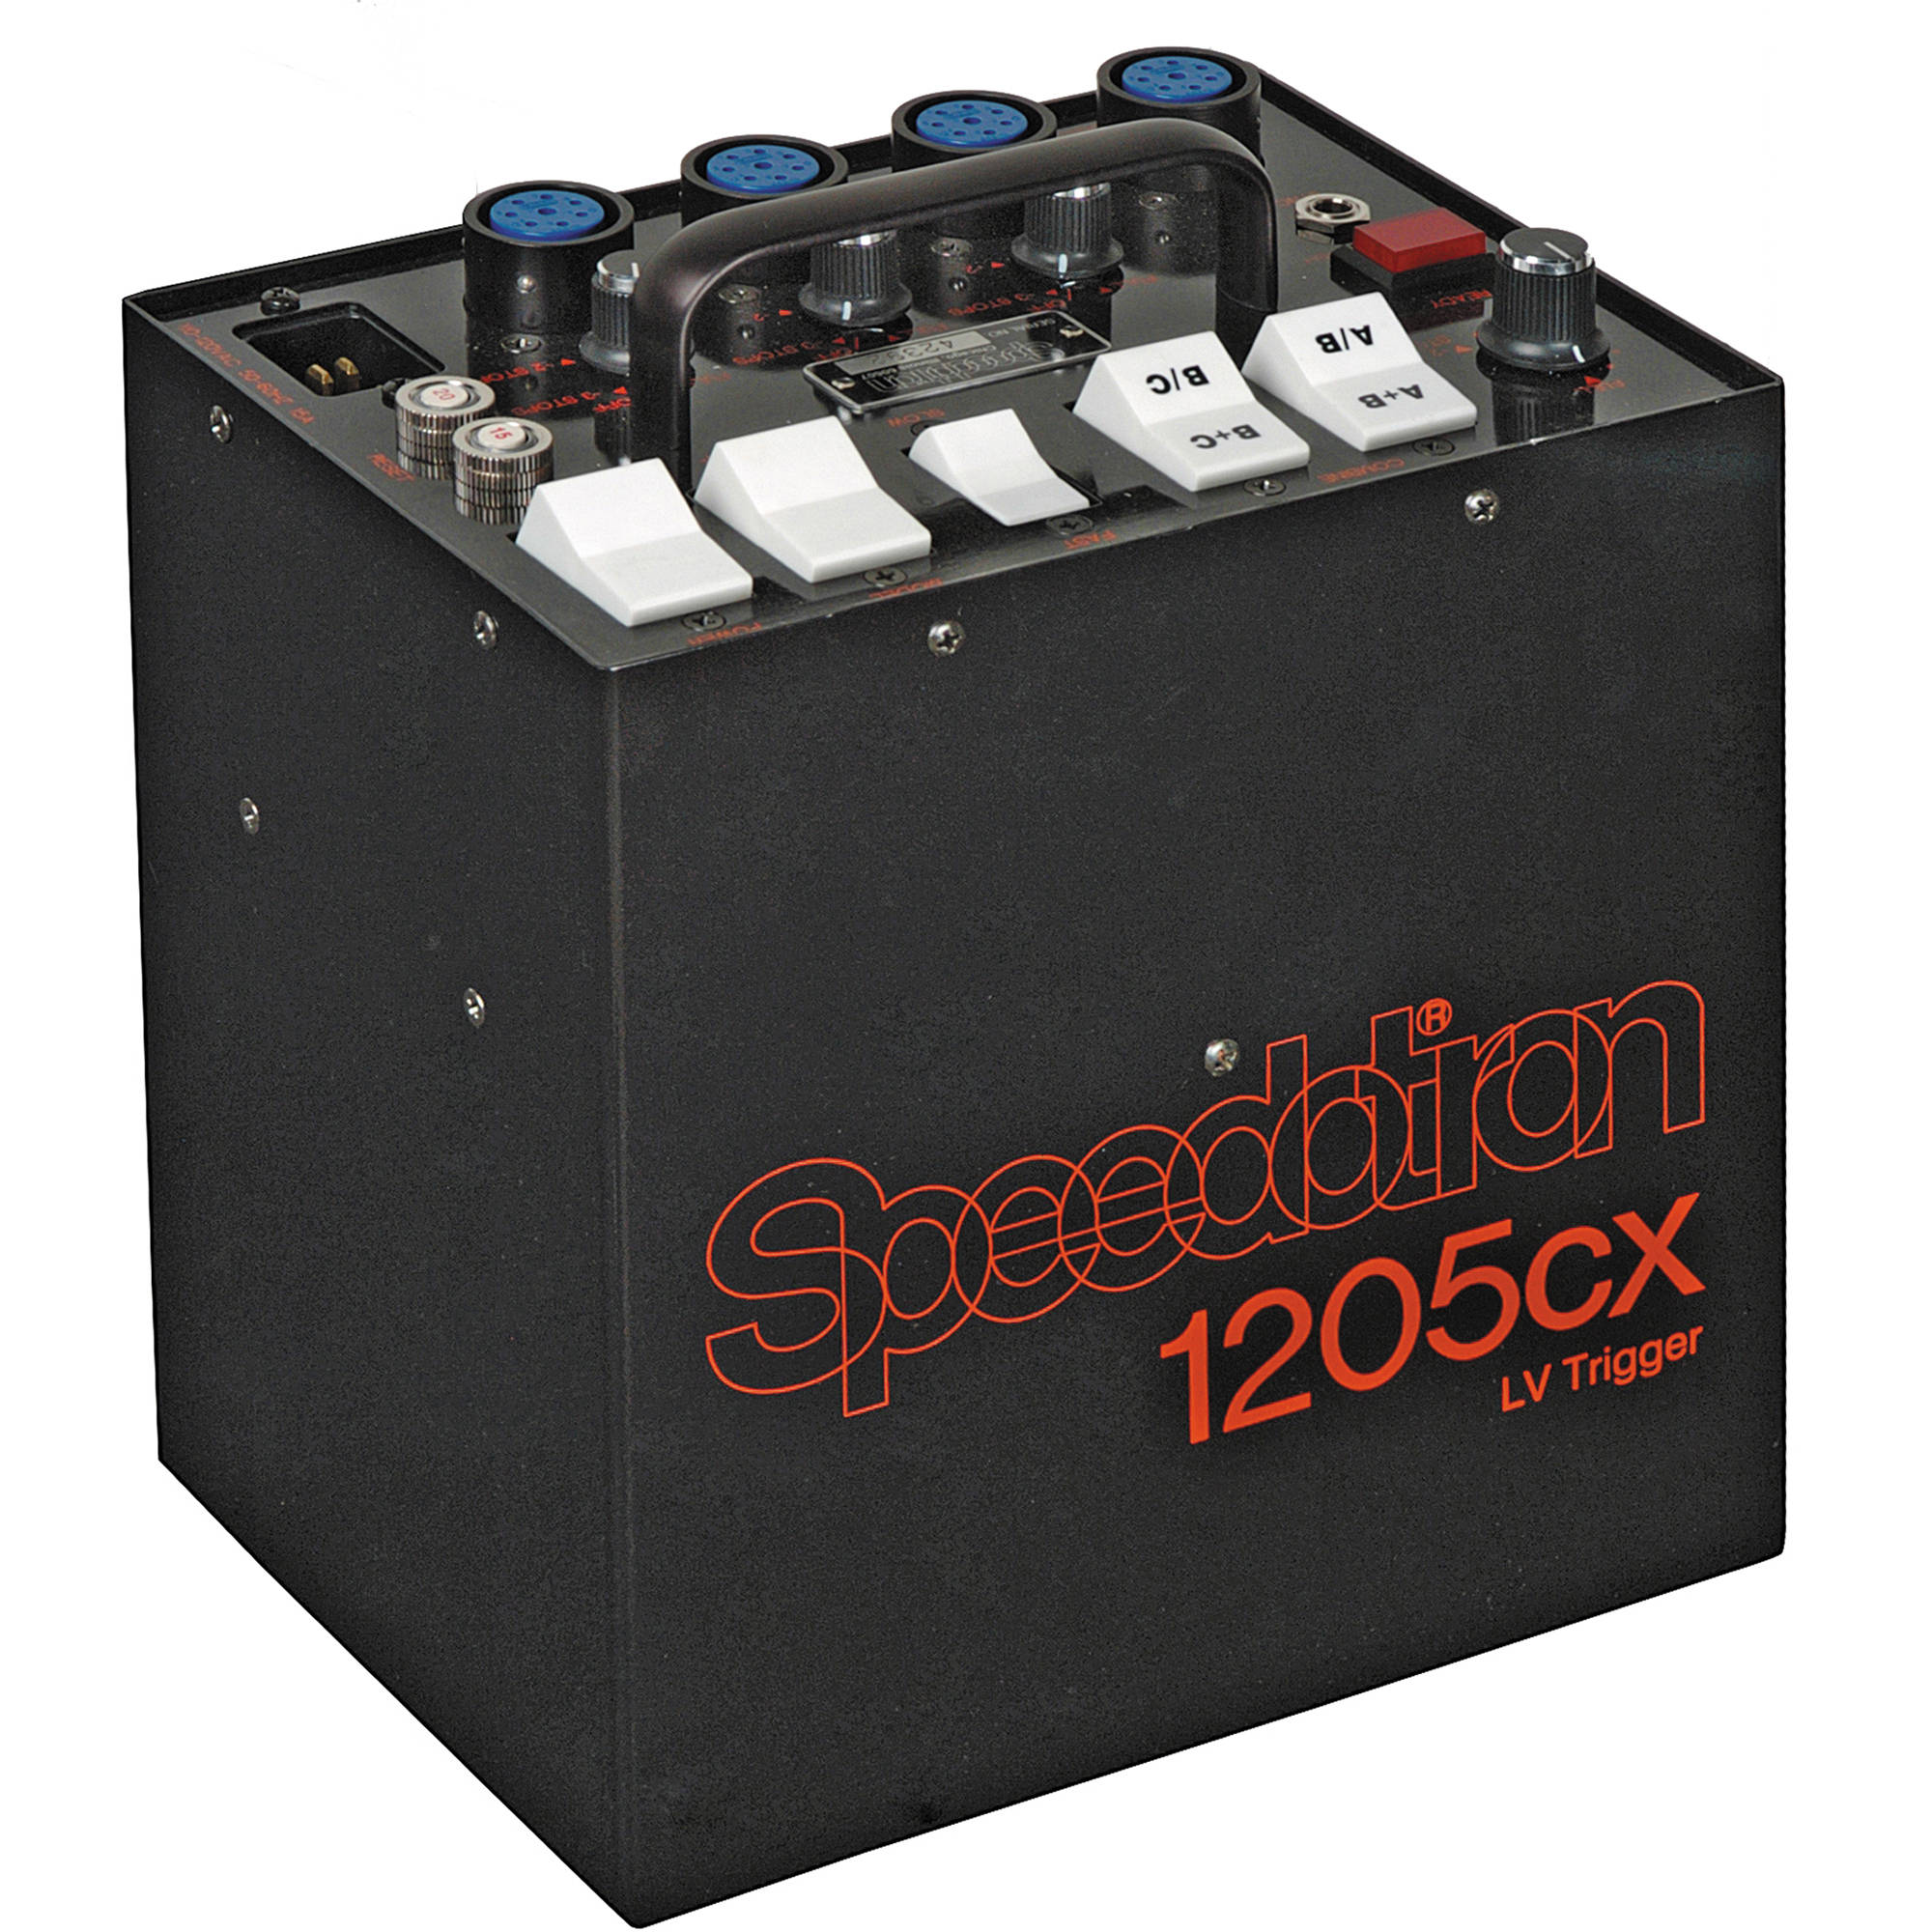 Sdotron 1205CX 1200 w/s Power Pack (120V) 850107 B&H Photo on